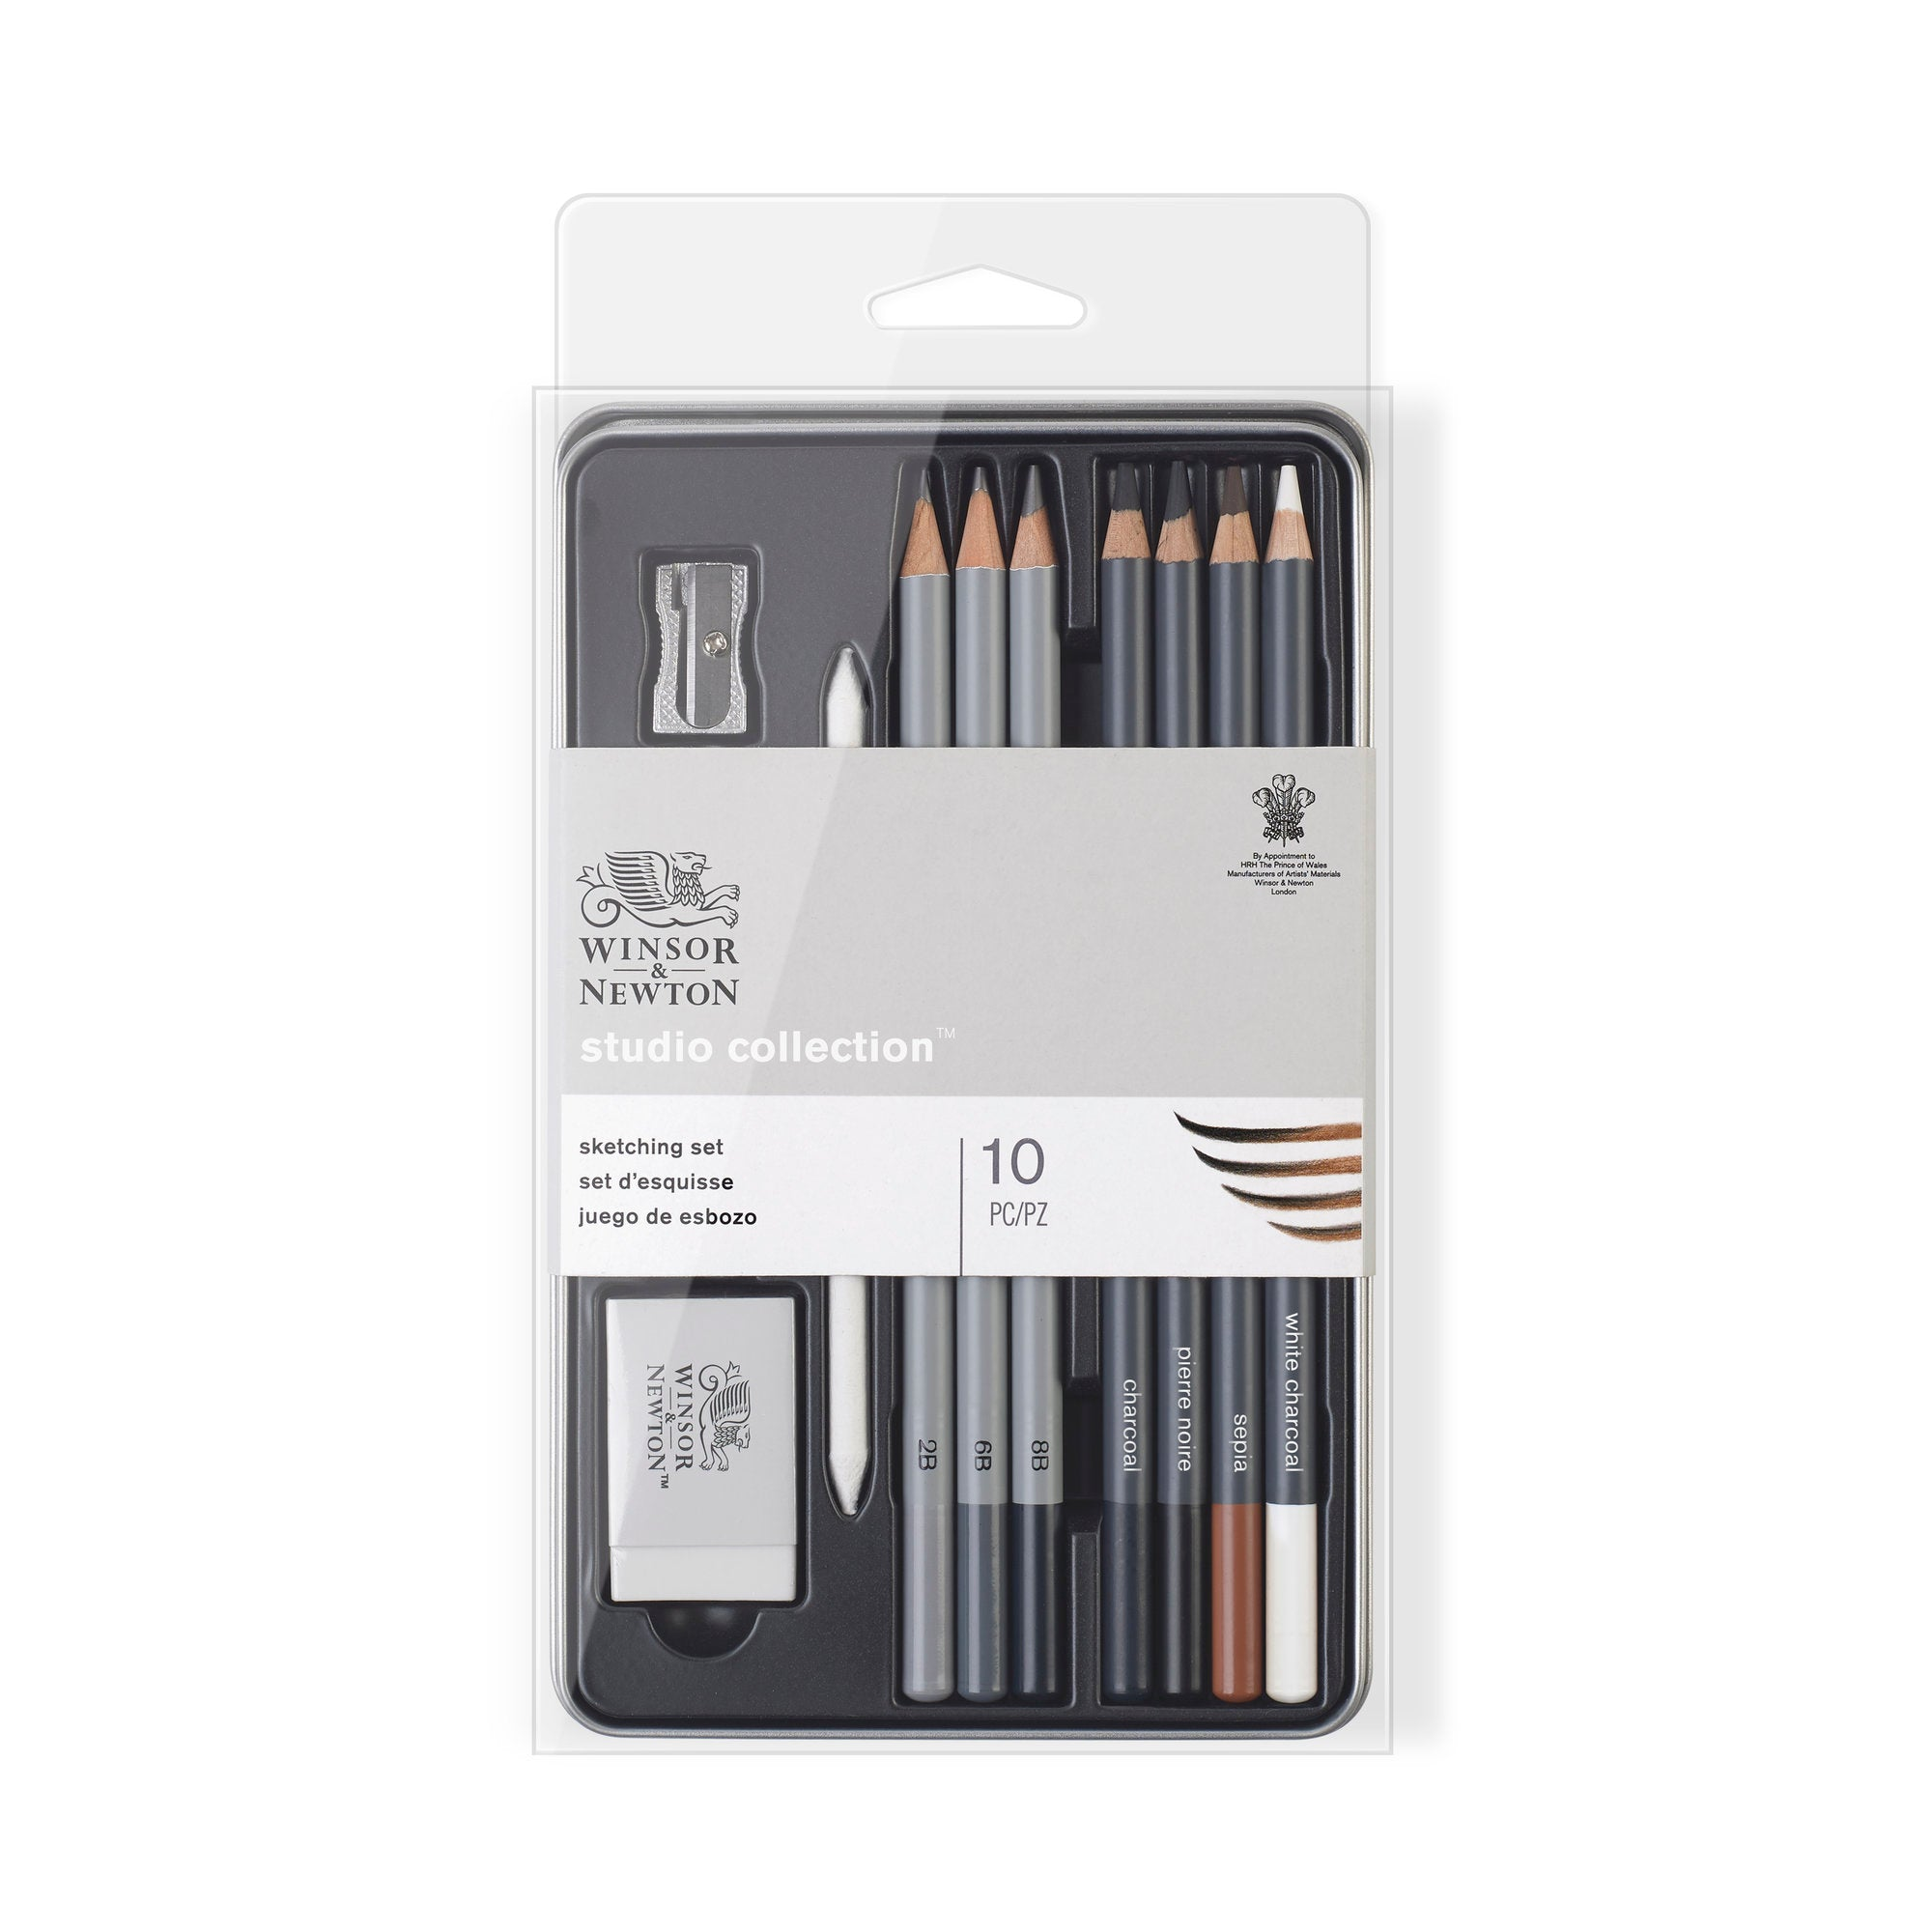 Winsor & Newton Studio Collection Sketching Pencil Set x10